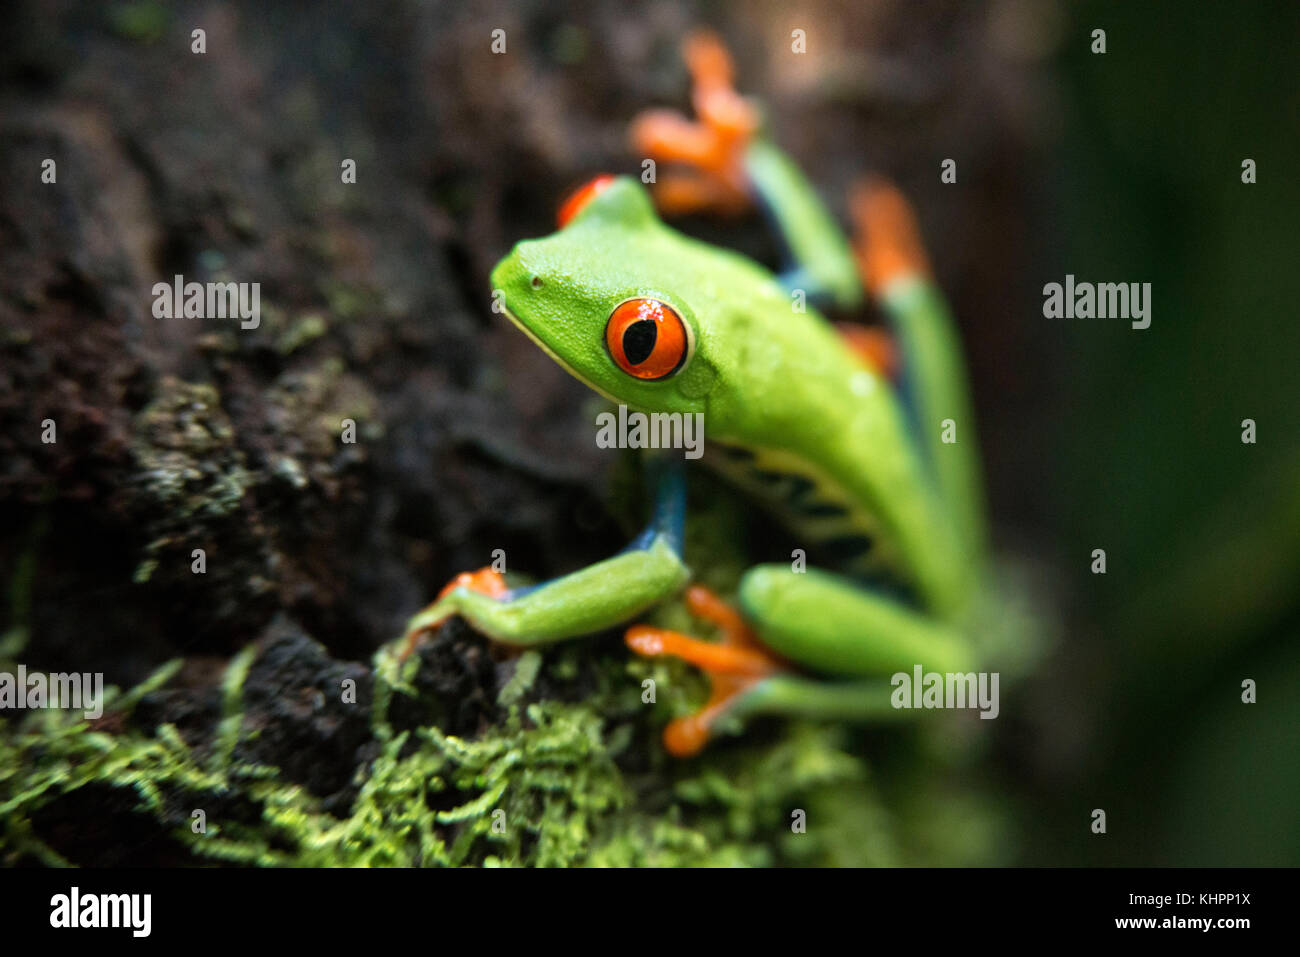 Red eyed tree frog, Agalychnis callidrias curious treefrog in rainforest Costa Rica, Central America. Stock Photo